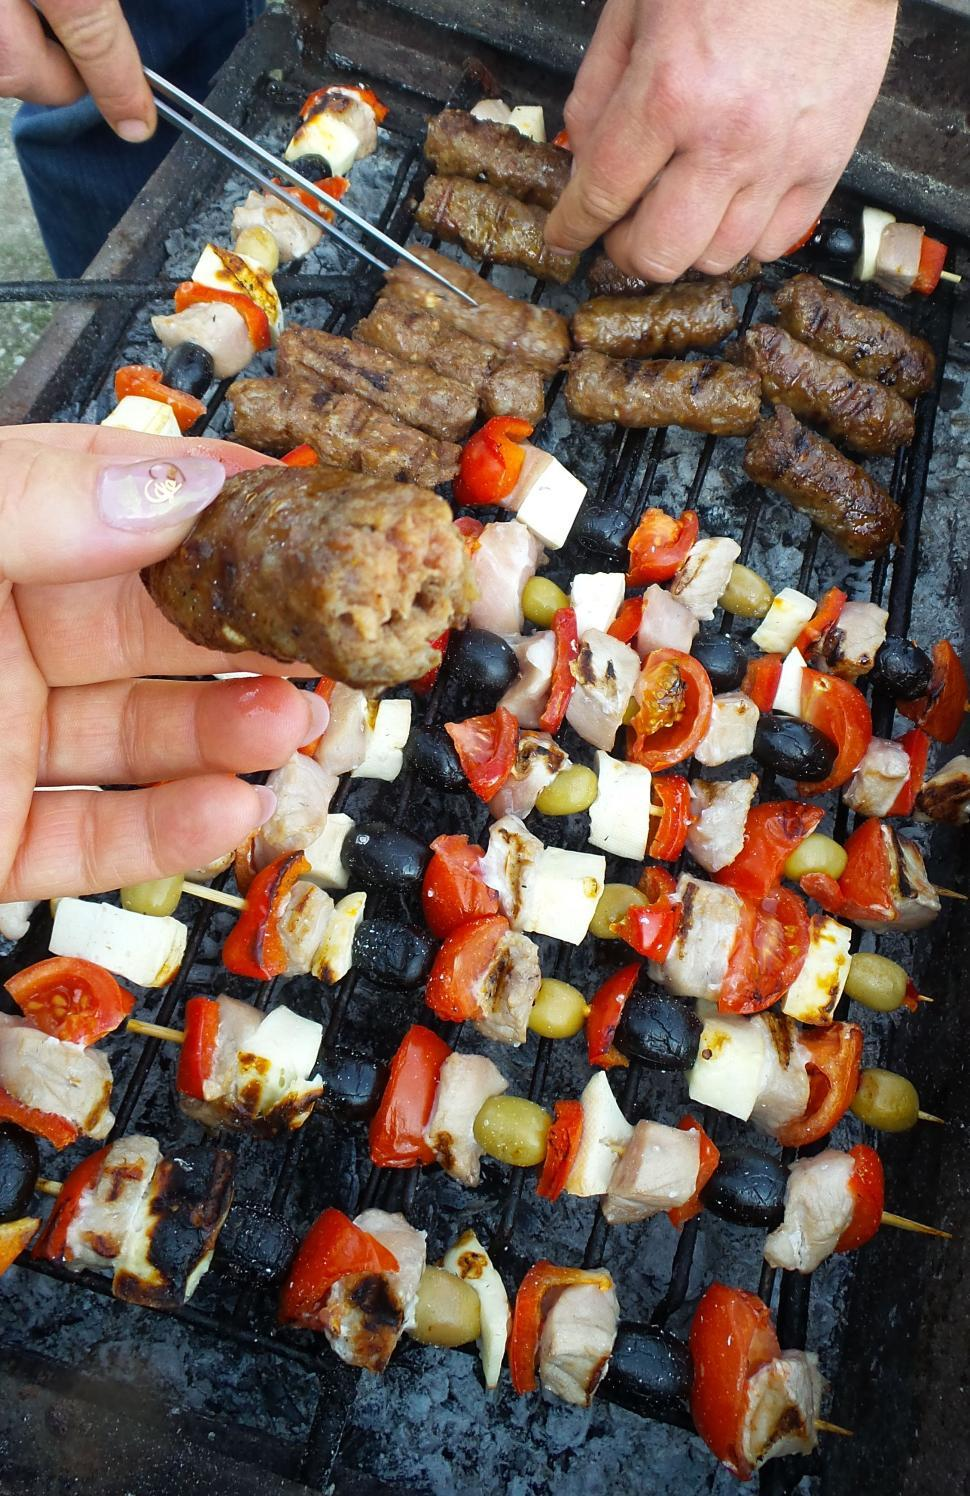 Download Free Stock Photo of Minced meat rolls and chicken skewers on the grill